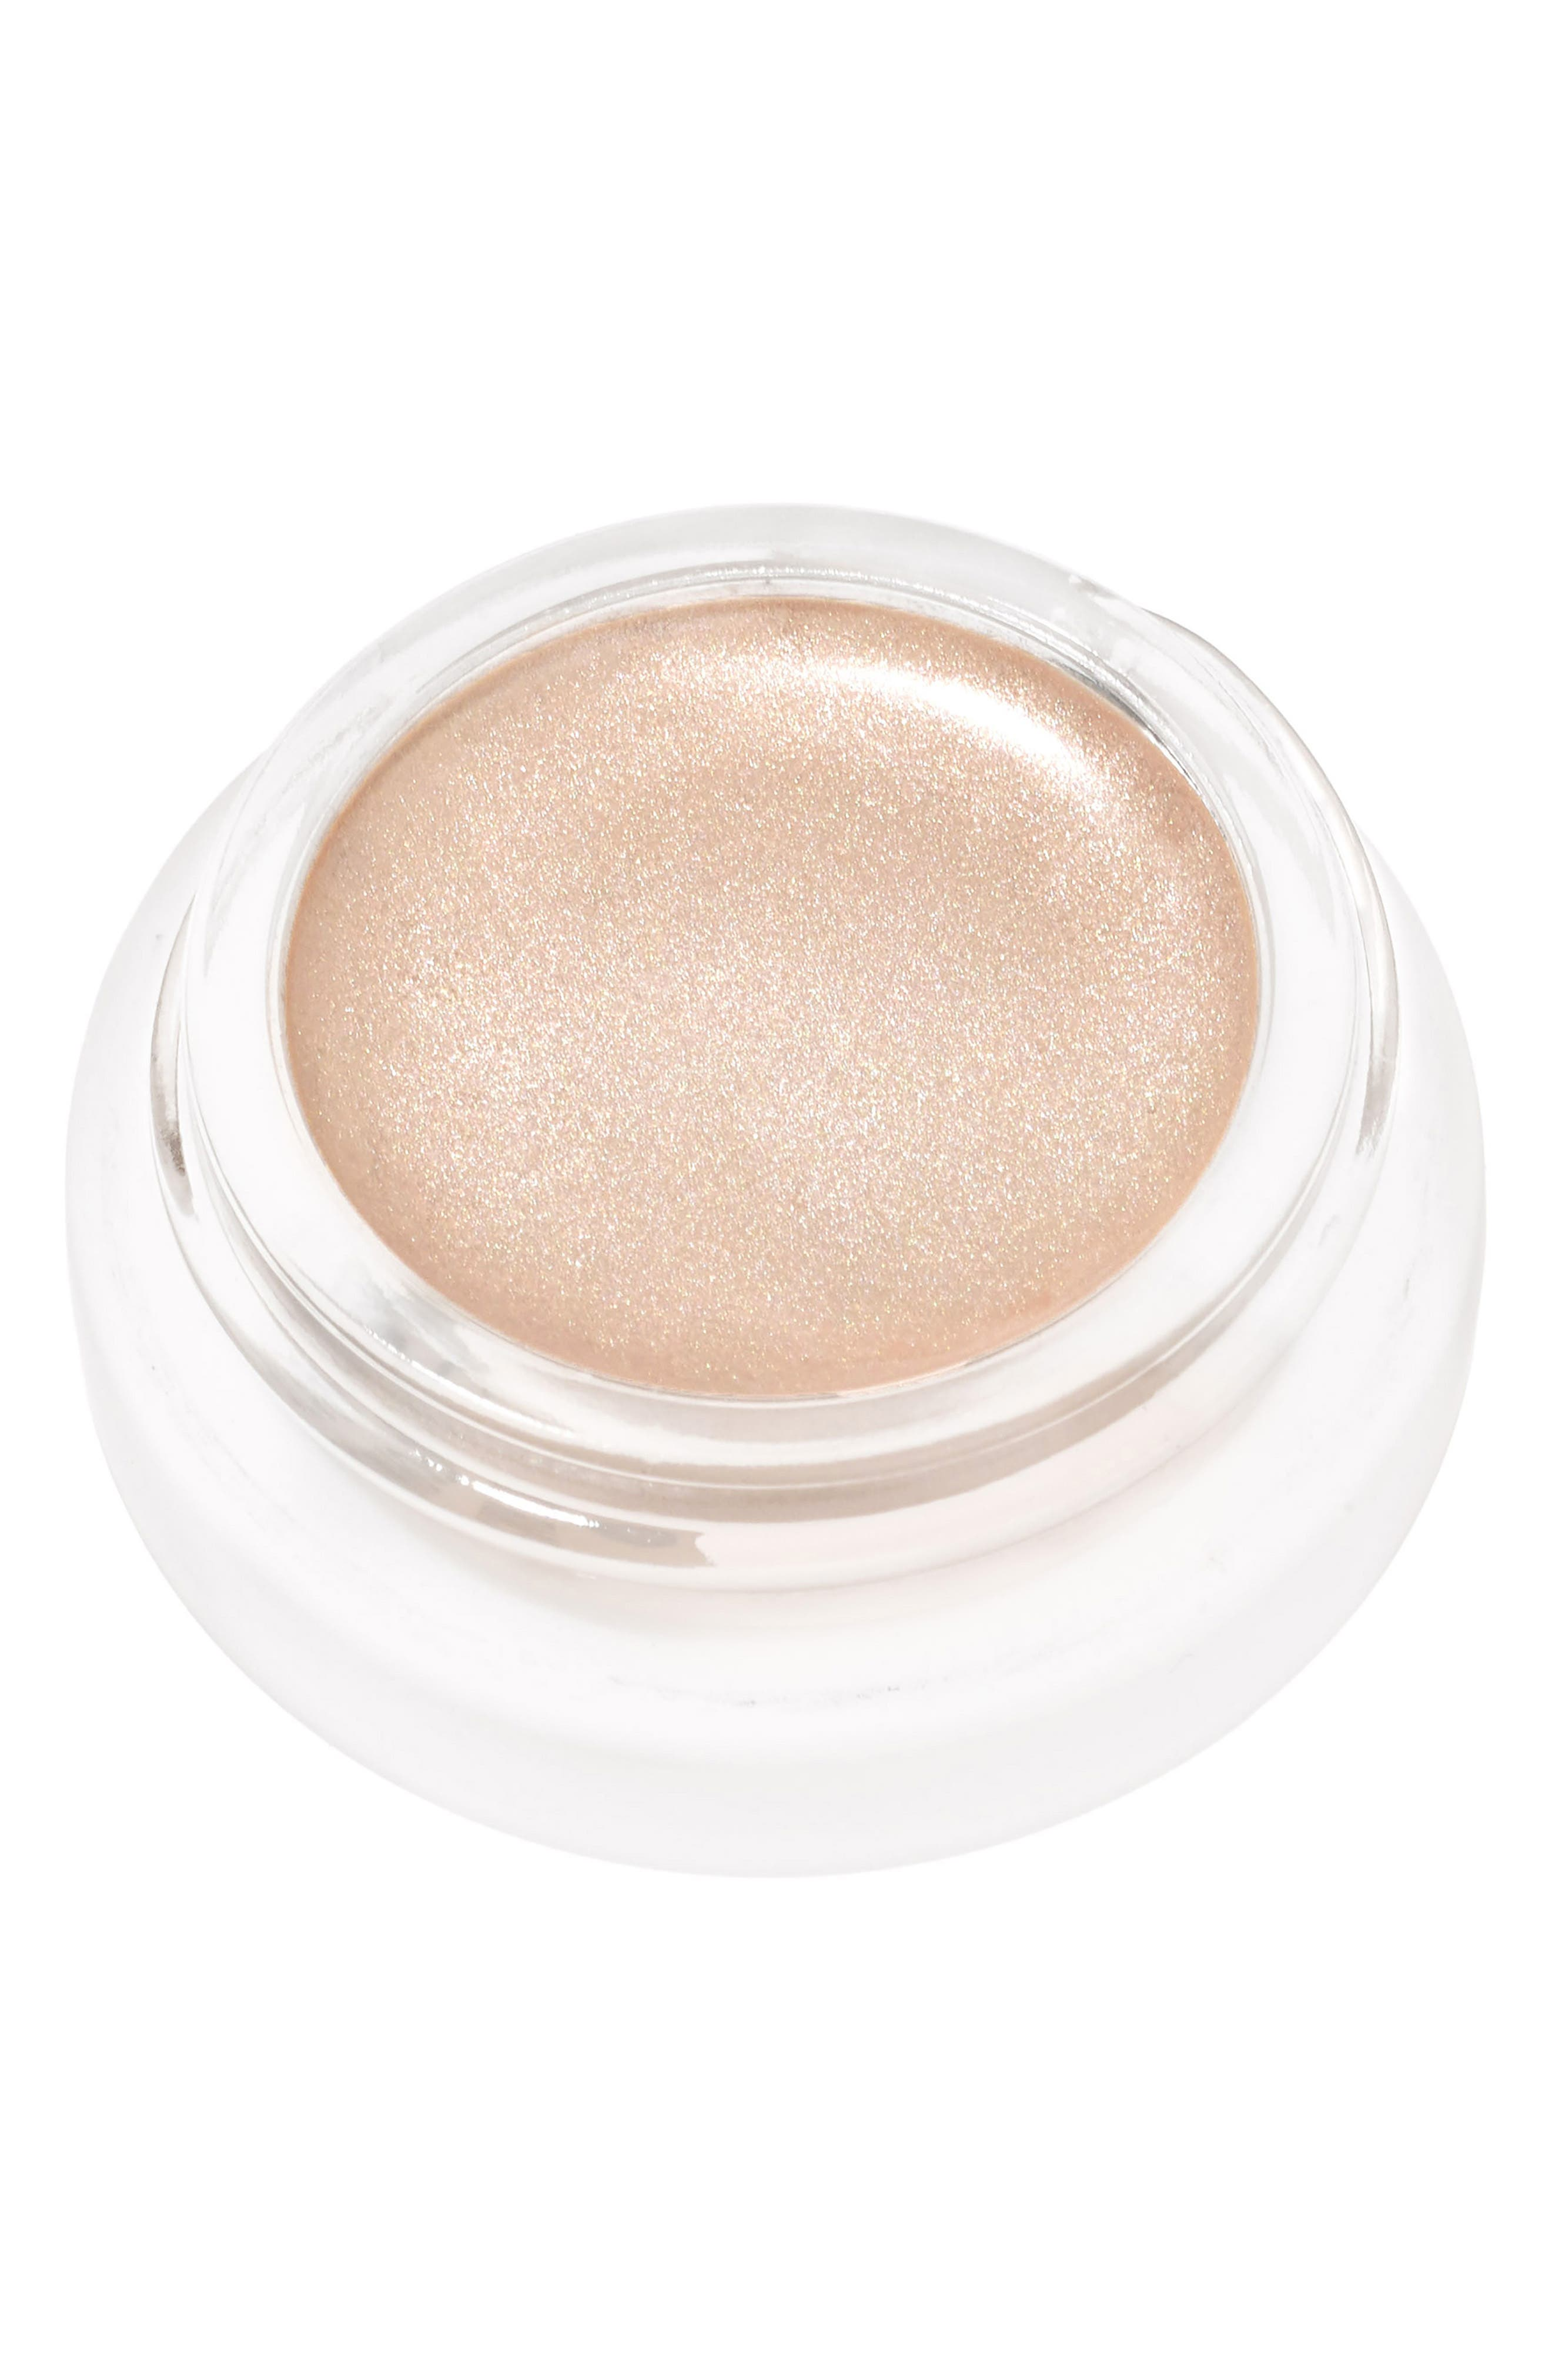 RMS Beauty Magic Luminizer